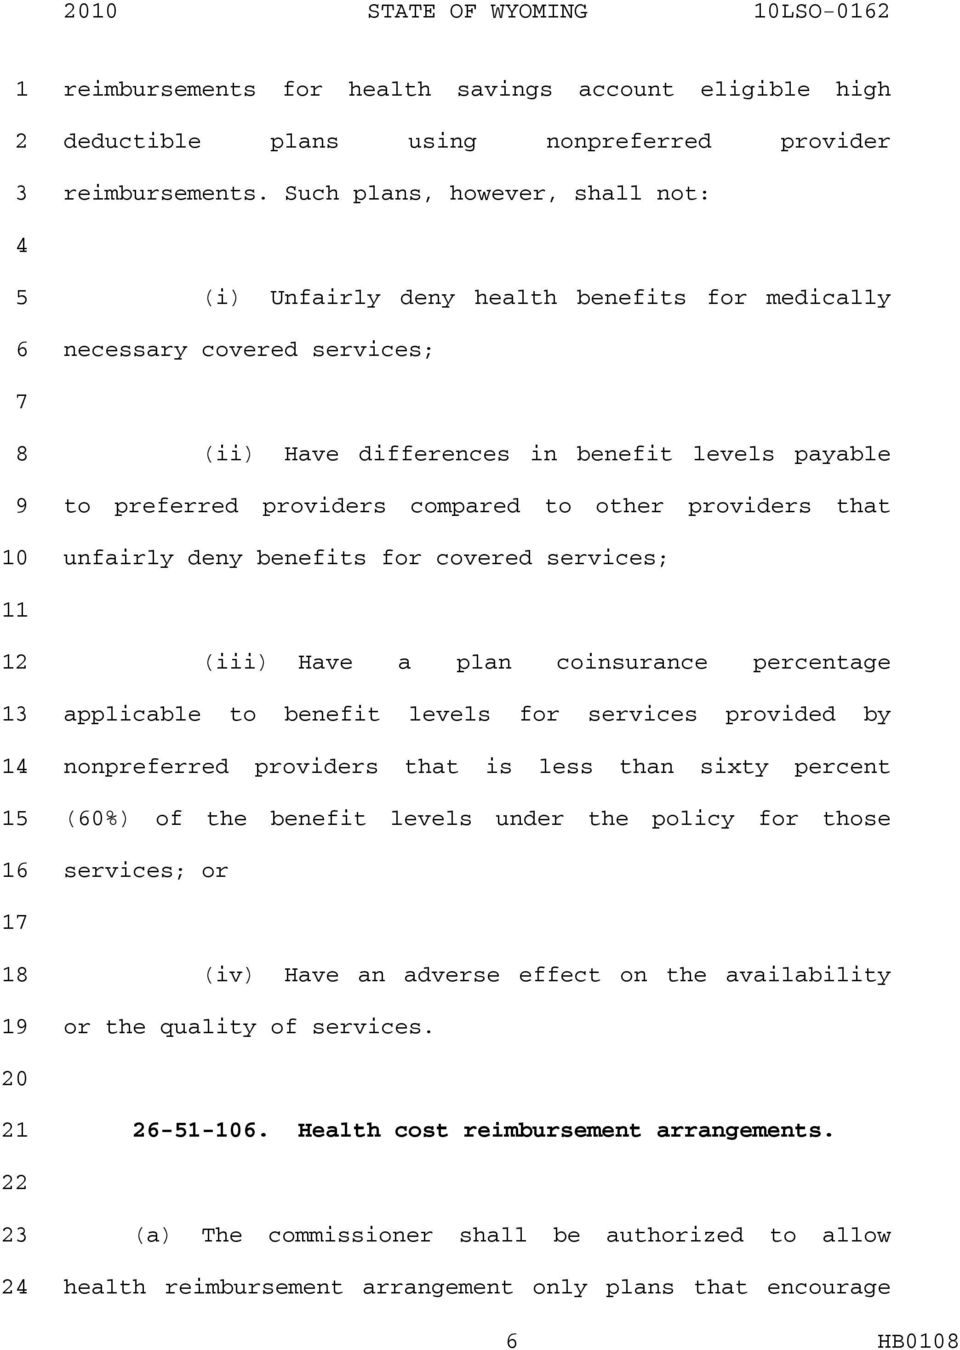 providers that unfairly deny benefits for covered services; (iii) Have a plan coinsurance percentage applicable to benefit levels for services provided by nonpreferred providers that is less than